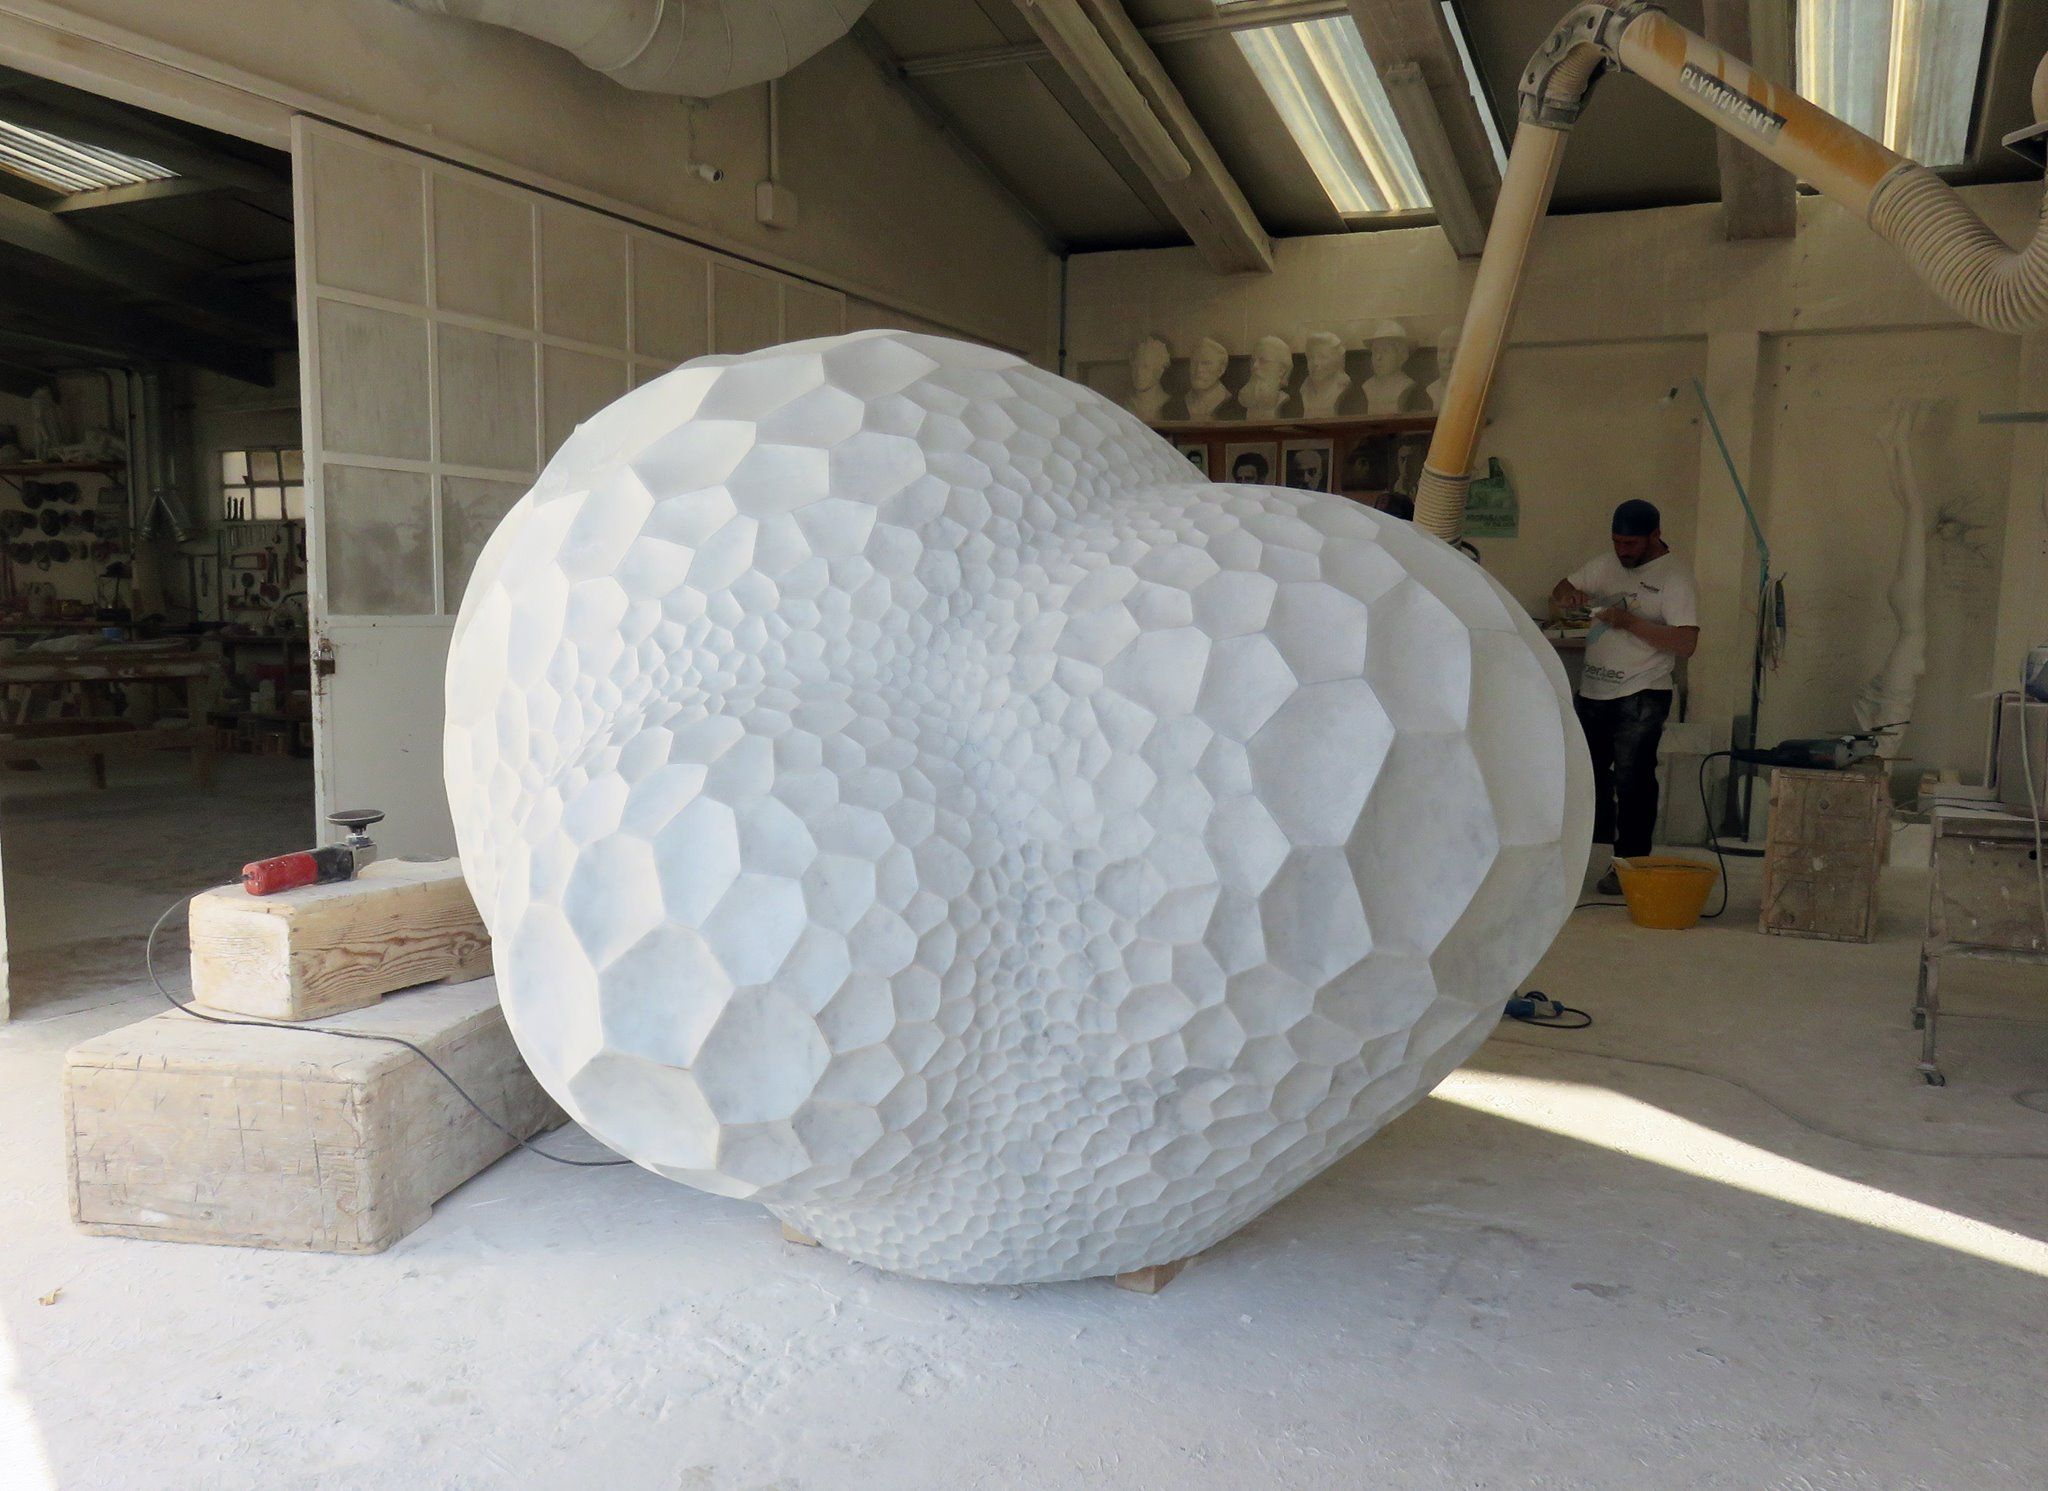 Swiss sculptor Sibylle Pasche transforms large segments of Italian marble into boulder-like sculptures which are covered in a porous web. These holes provide a peak inside the works' complex …